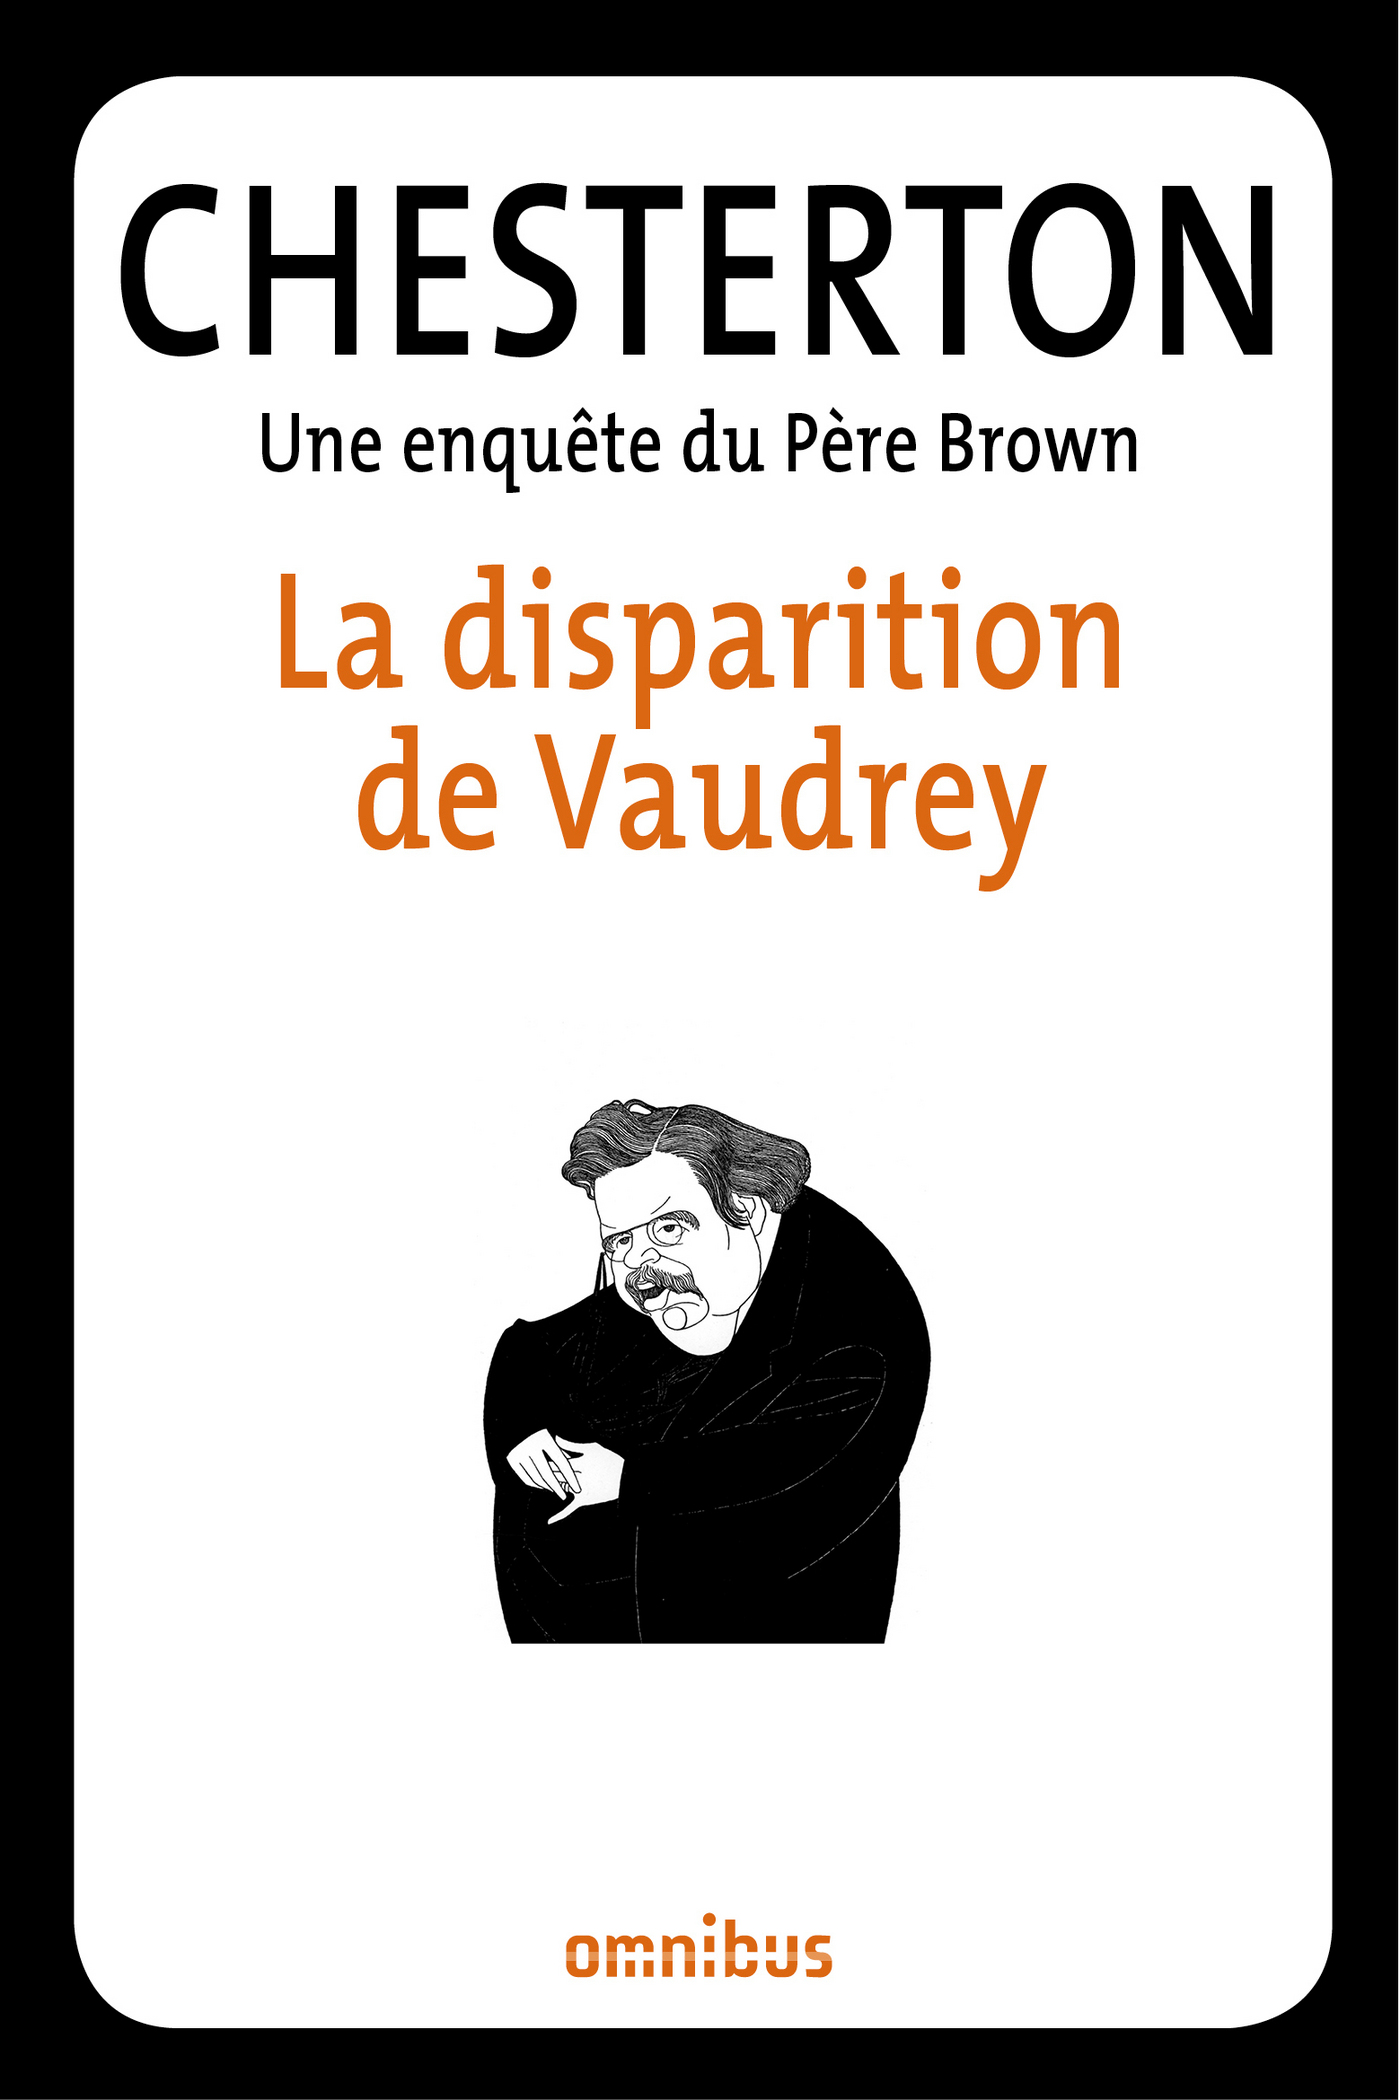 La disparition de Vaudrey